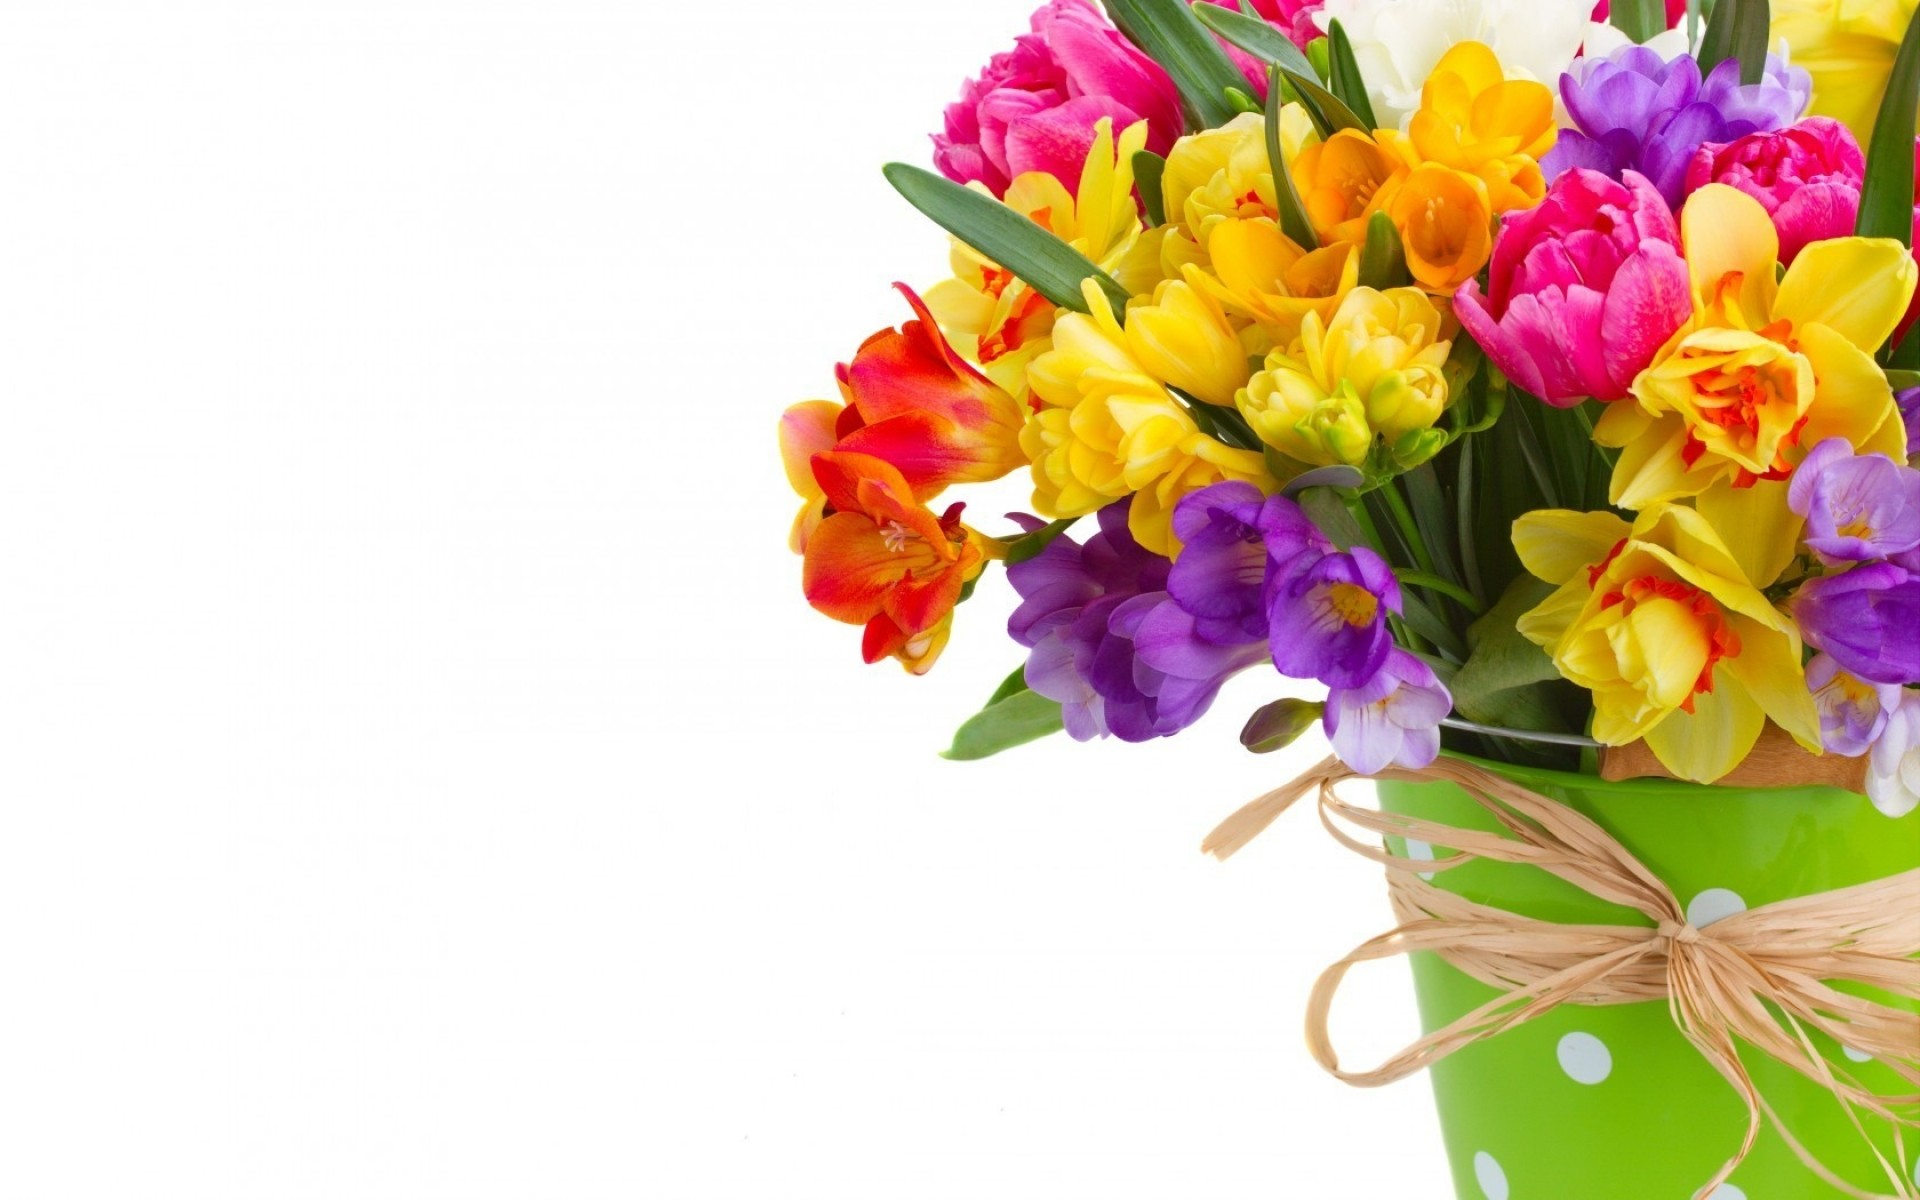 flowers nature flora flower bouquet color floral blooming leaf gift bright beautiful easter petal decoration garden summer cluster season close-up romantic daffodils freesias spring